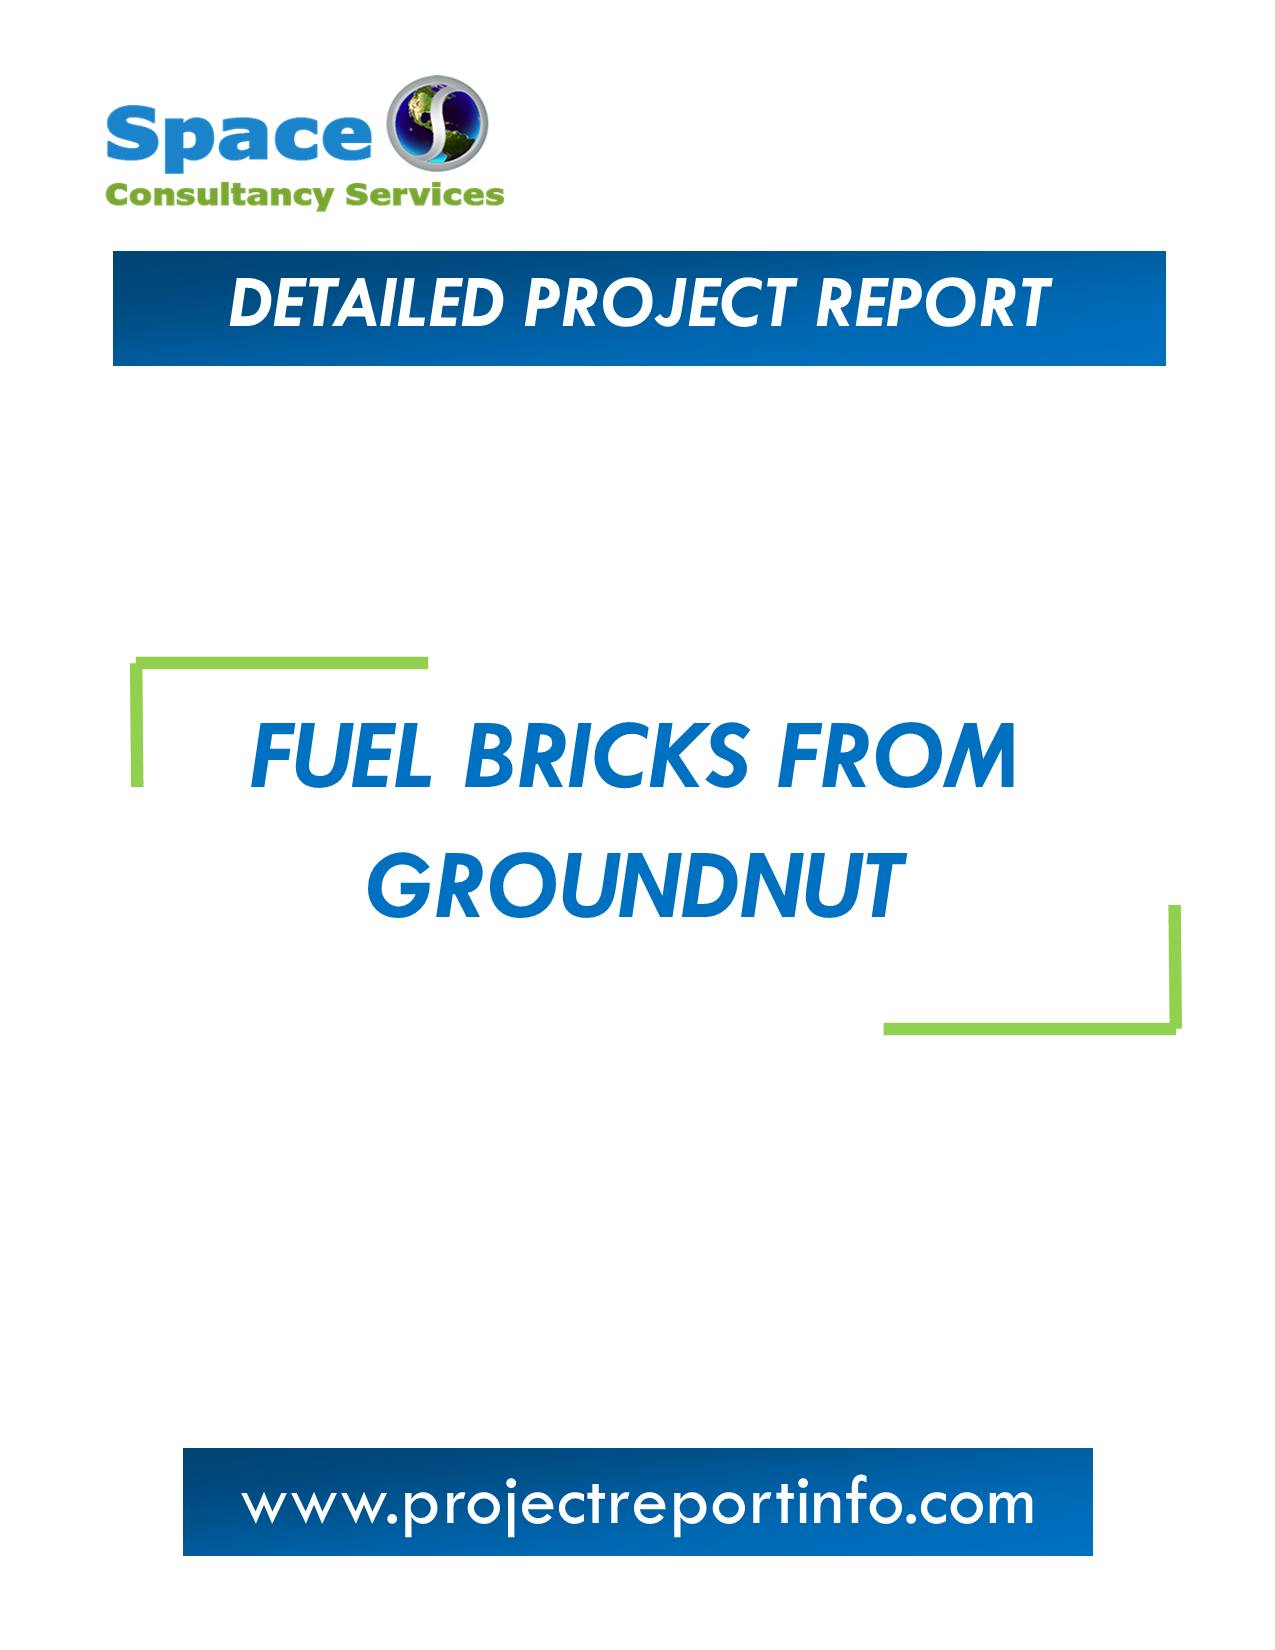 Project Report on Fuel Bricks from Groundnut Manufacturing